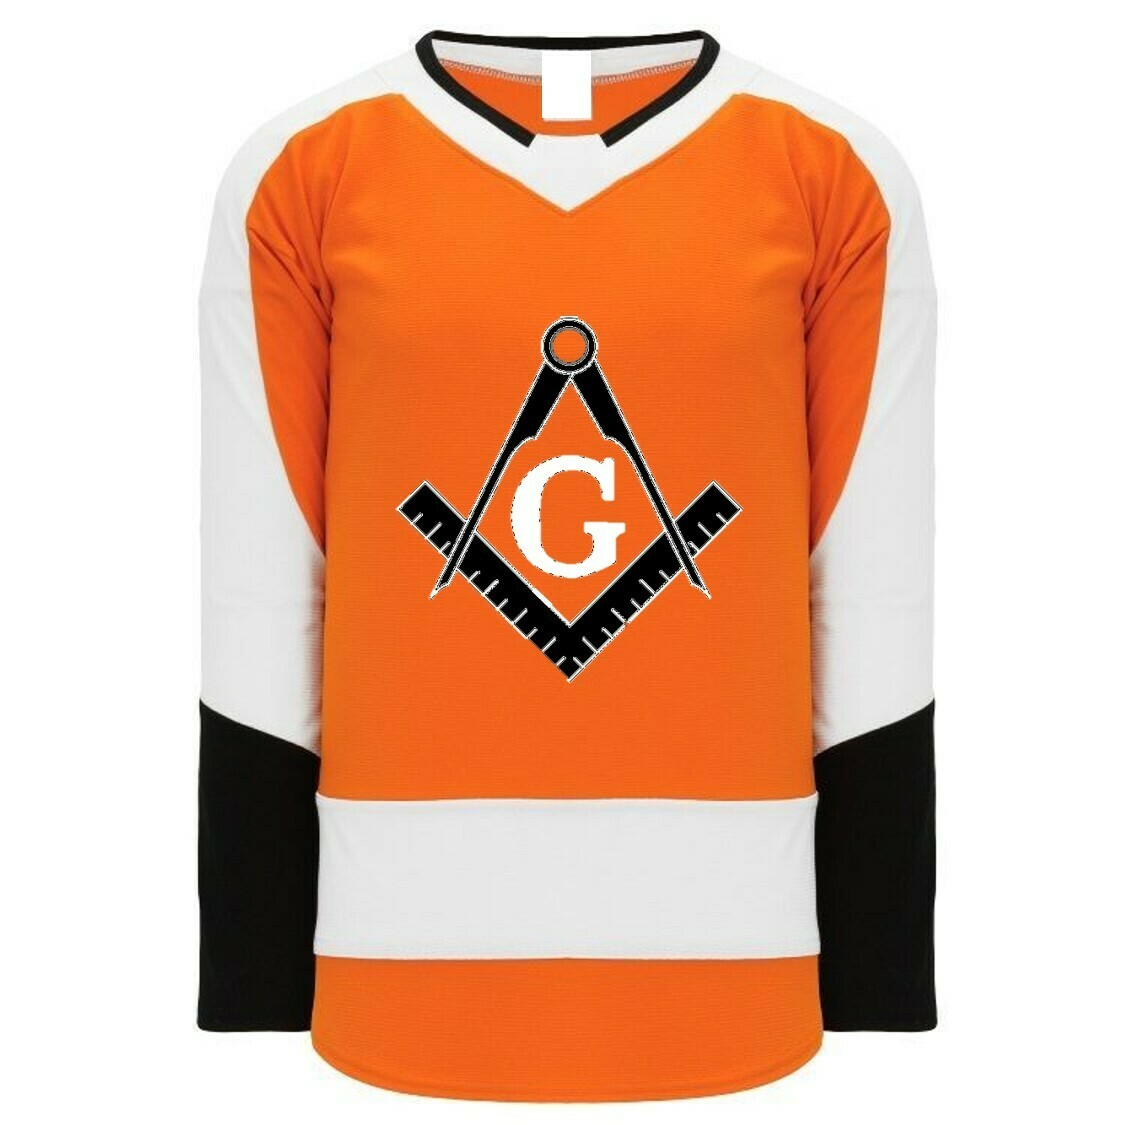 The Gritty Hockey Jersey